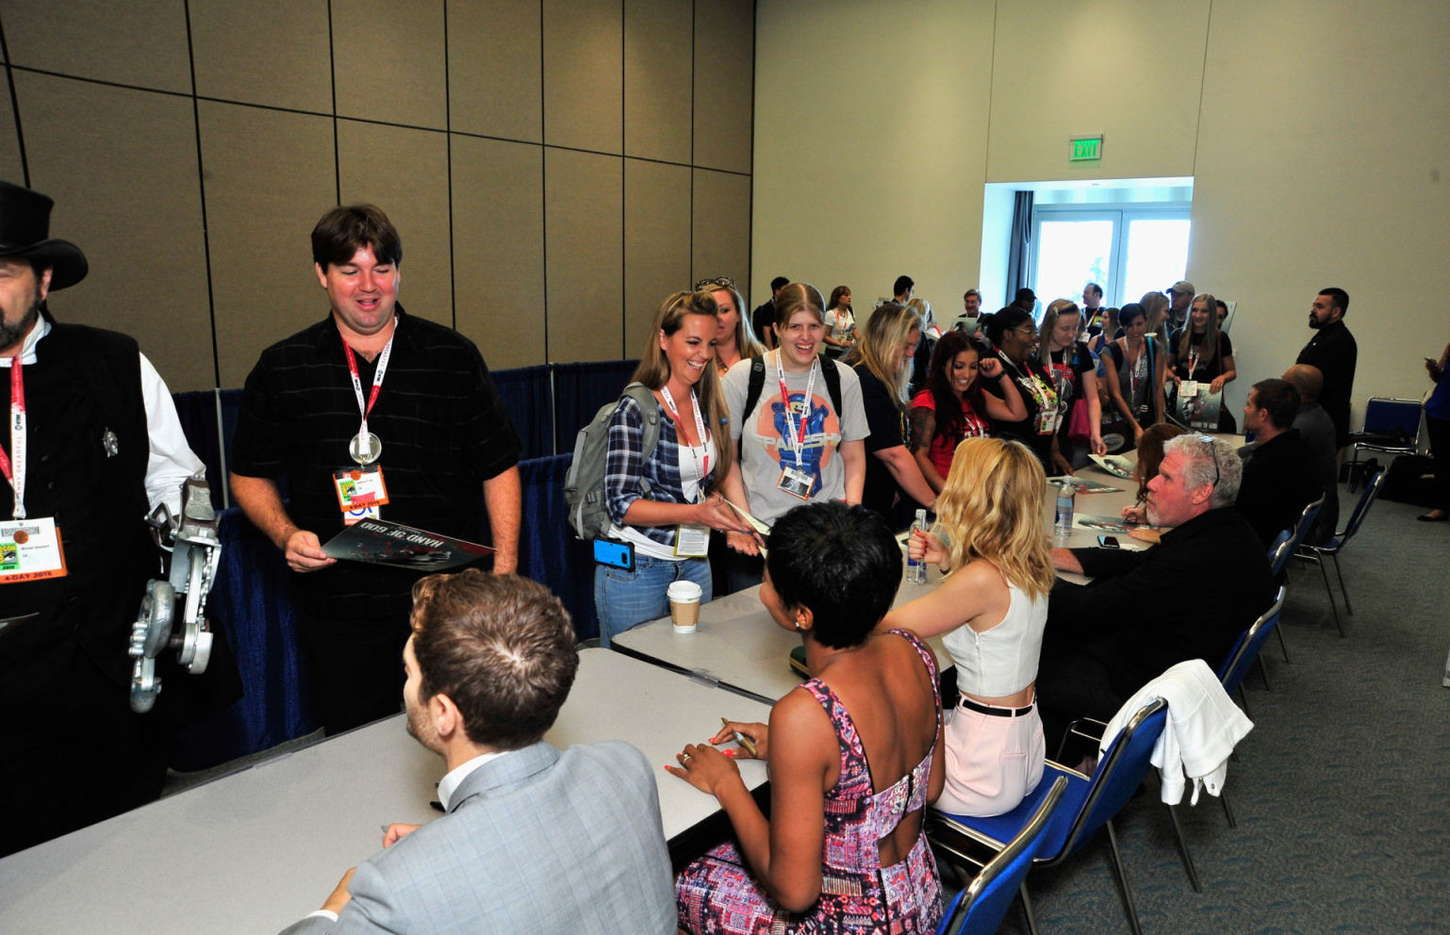 Alona Tal Hand of God Presentation at Comic Con in San Diego